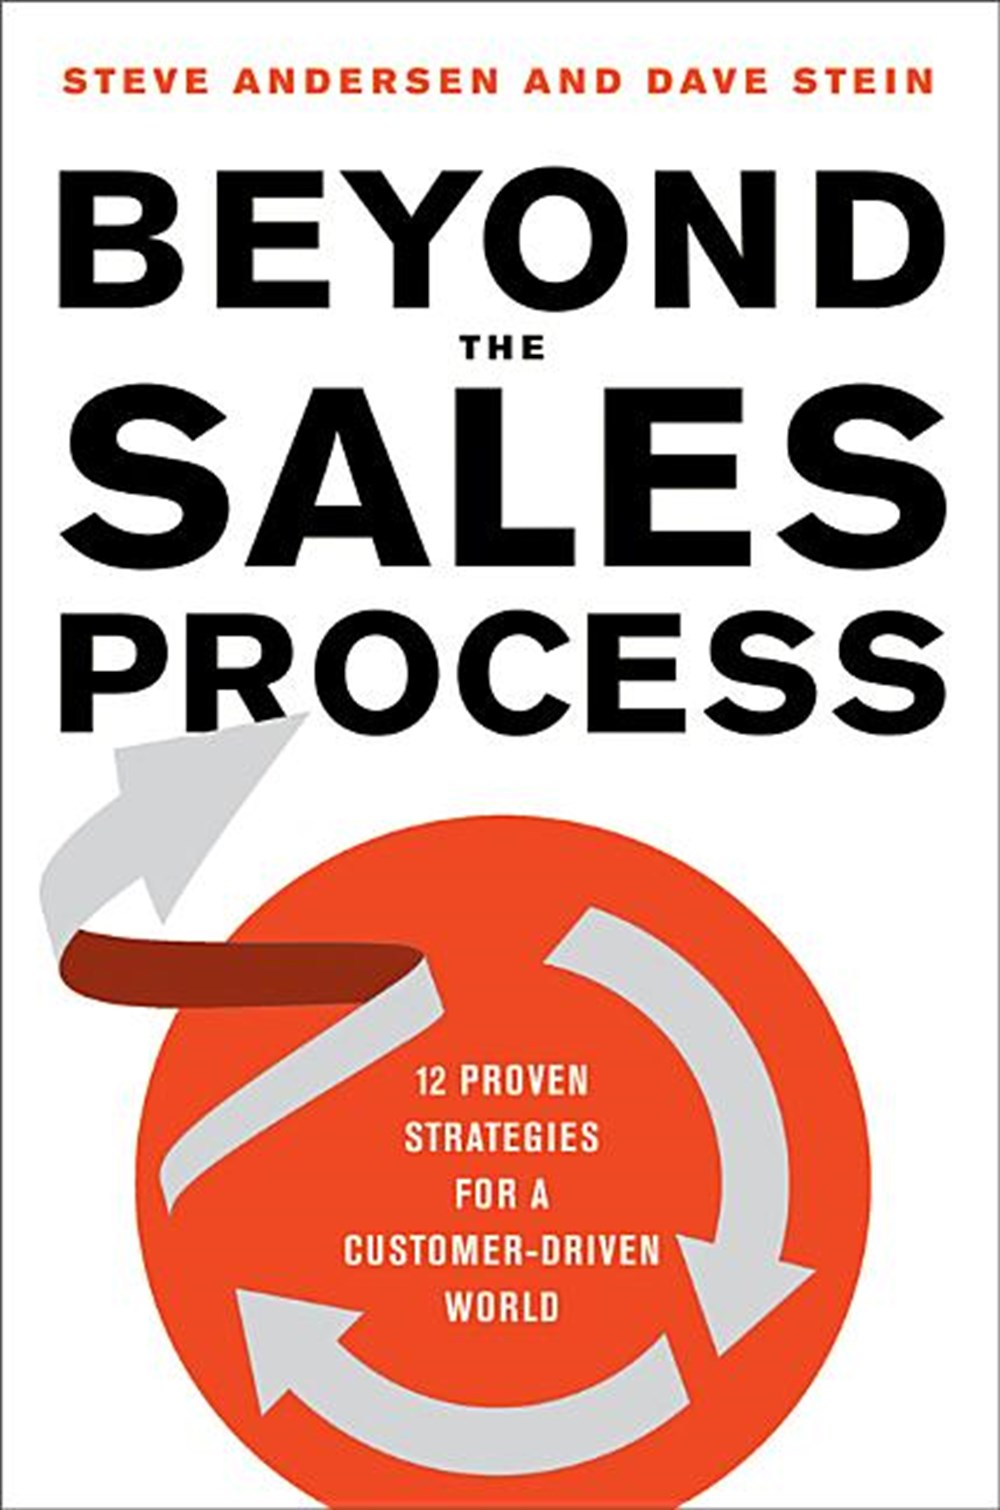 Beyond the Sales Process 12 Proven Strategies for a Customer-Driven World